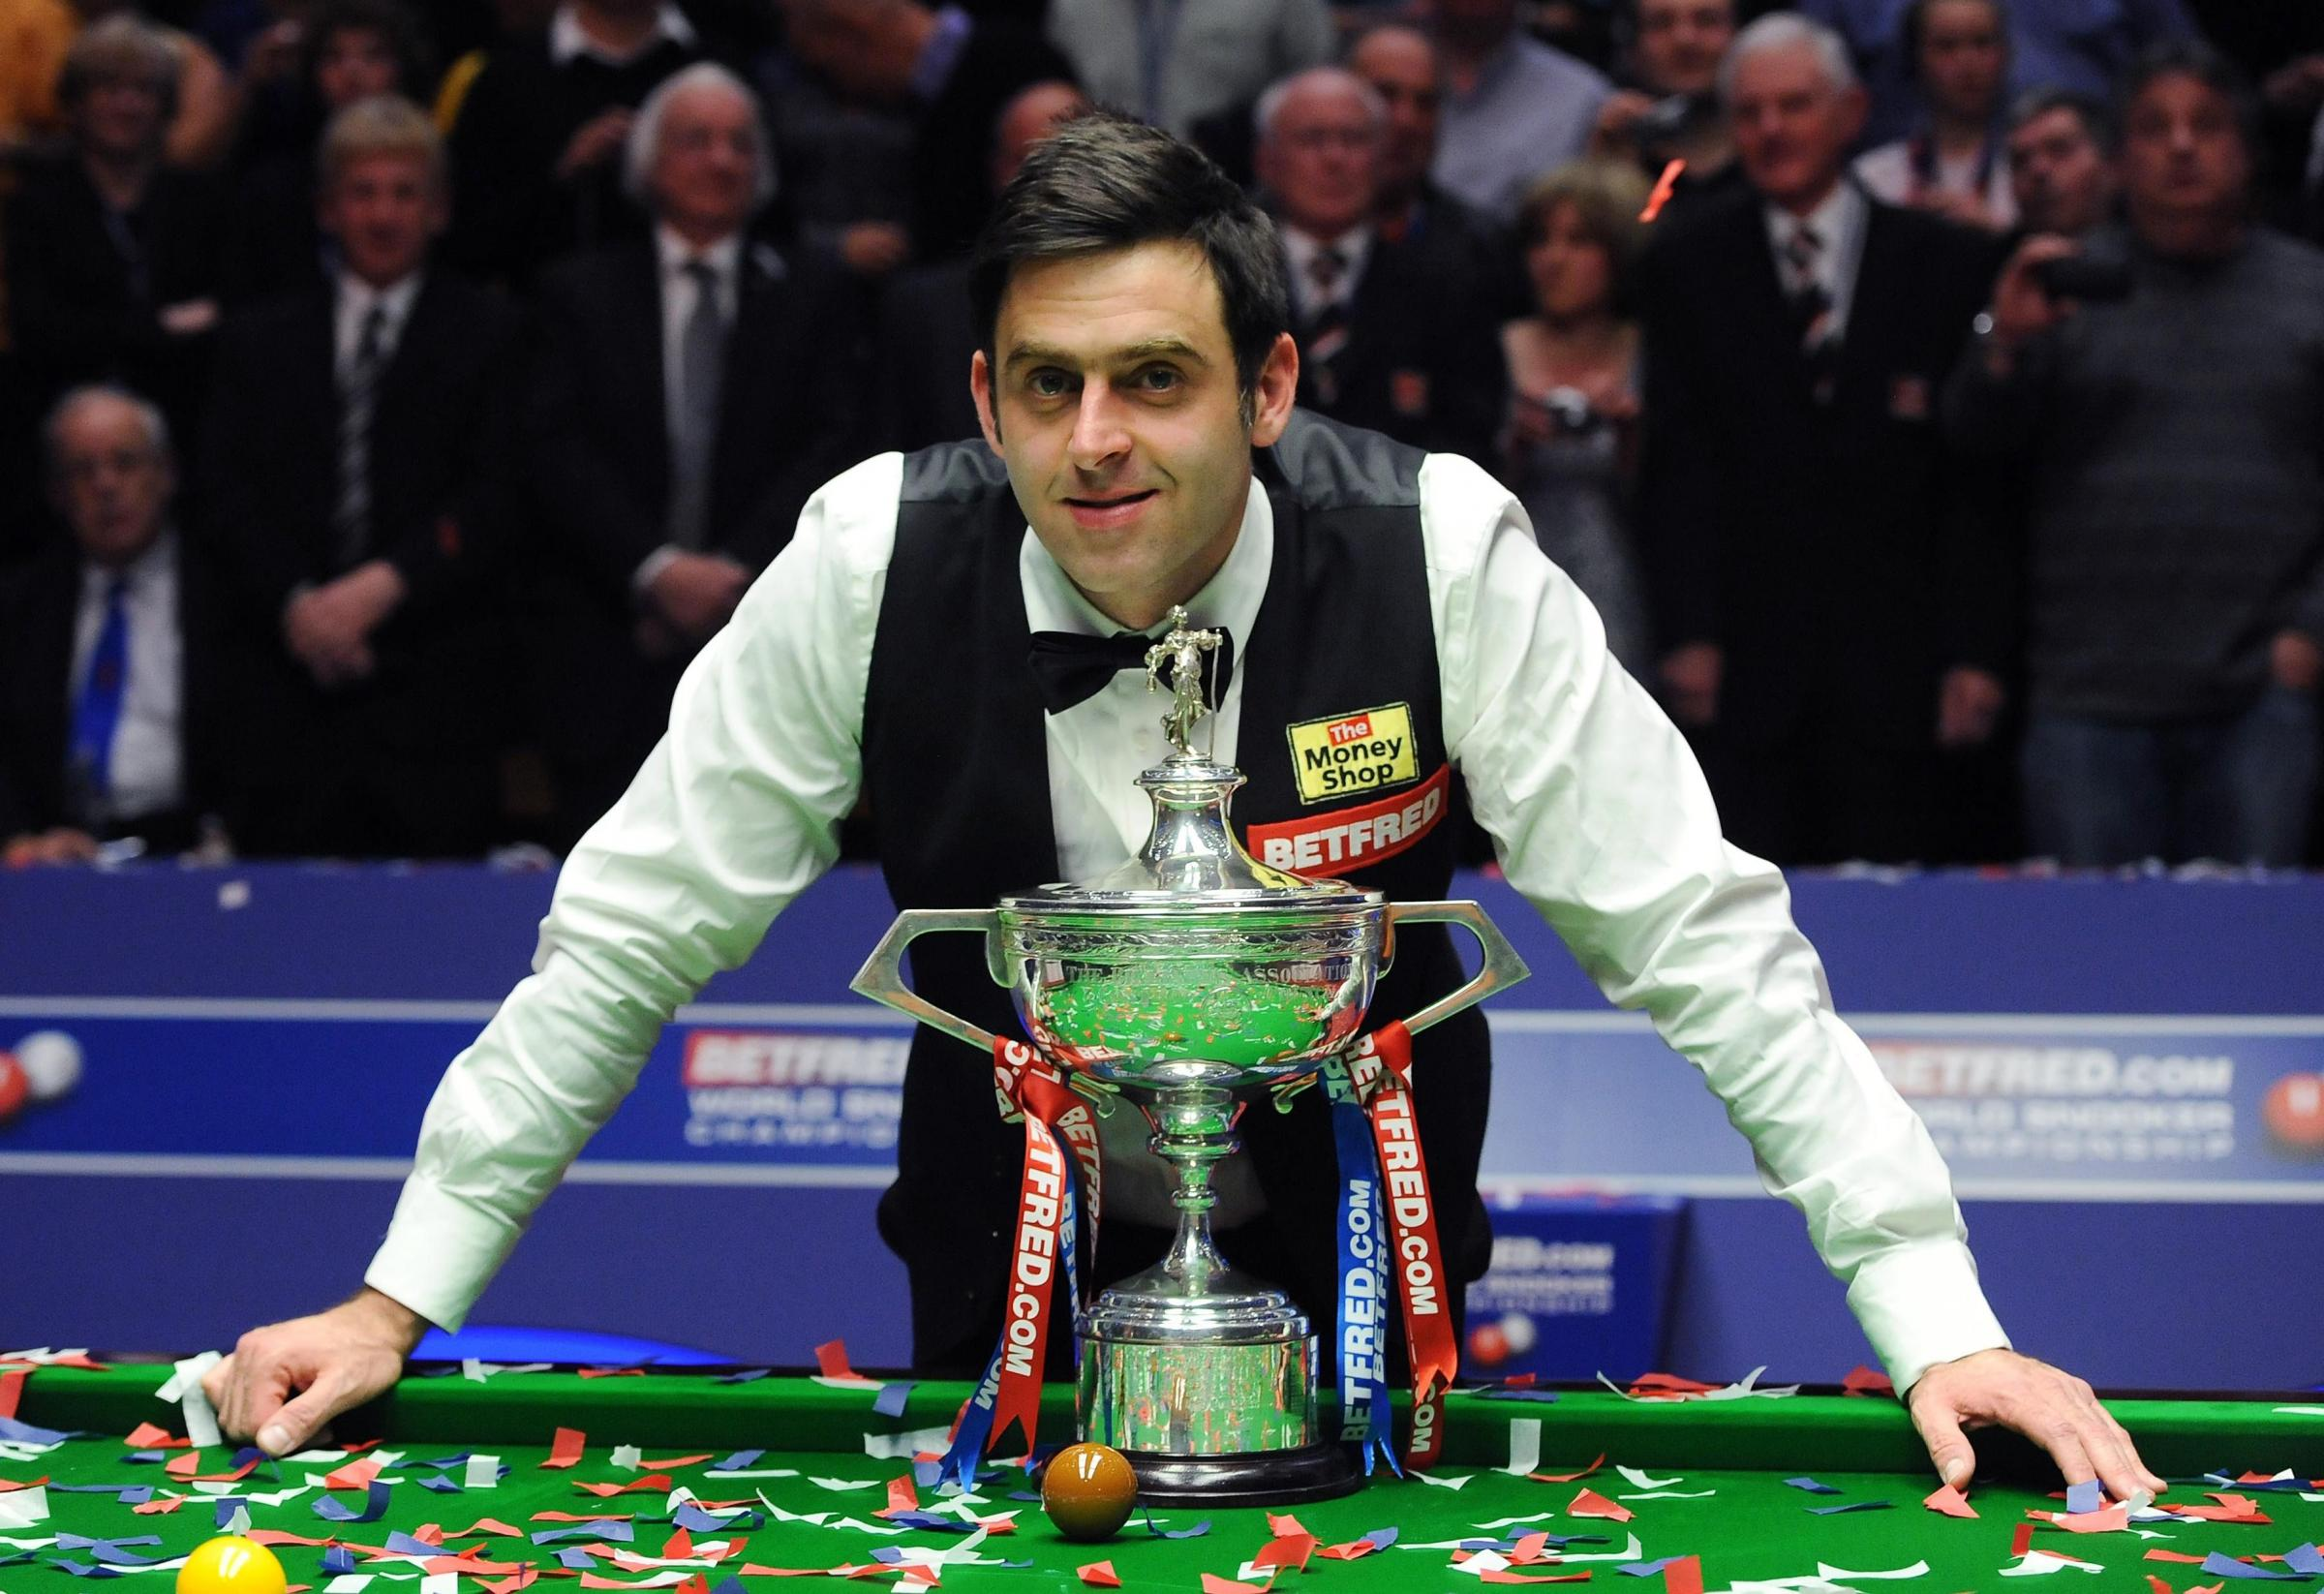 England's Ronnie O'Sullivan celebrates his victory with the trophy after the final during the Final of the Betfred.com World Snooker Championships at the Crucible Theatre, Sheffield. PRESS ASSOCIATION Photo. Picture date: Monday May 7, 2012. See P